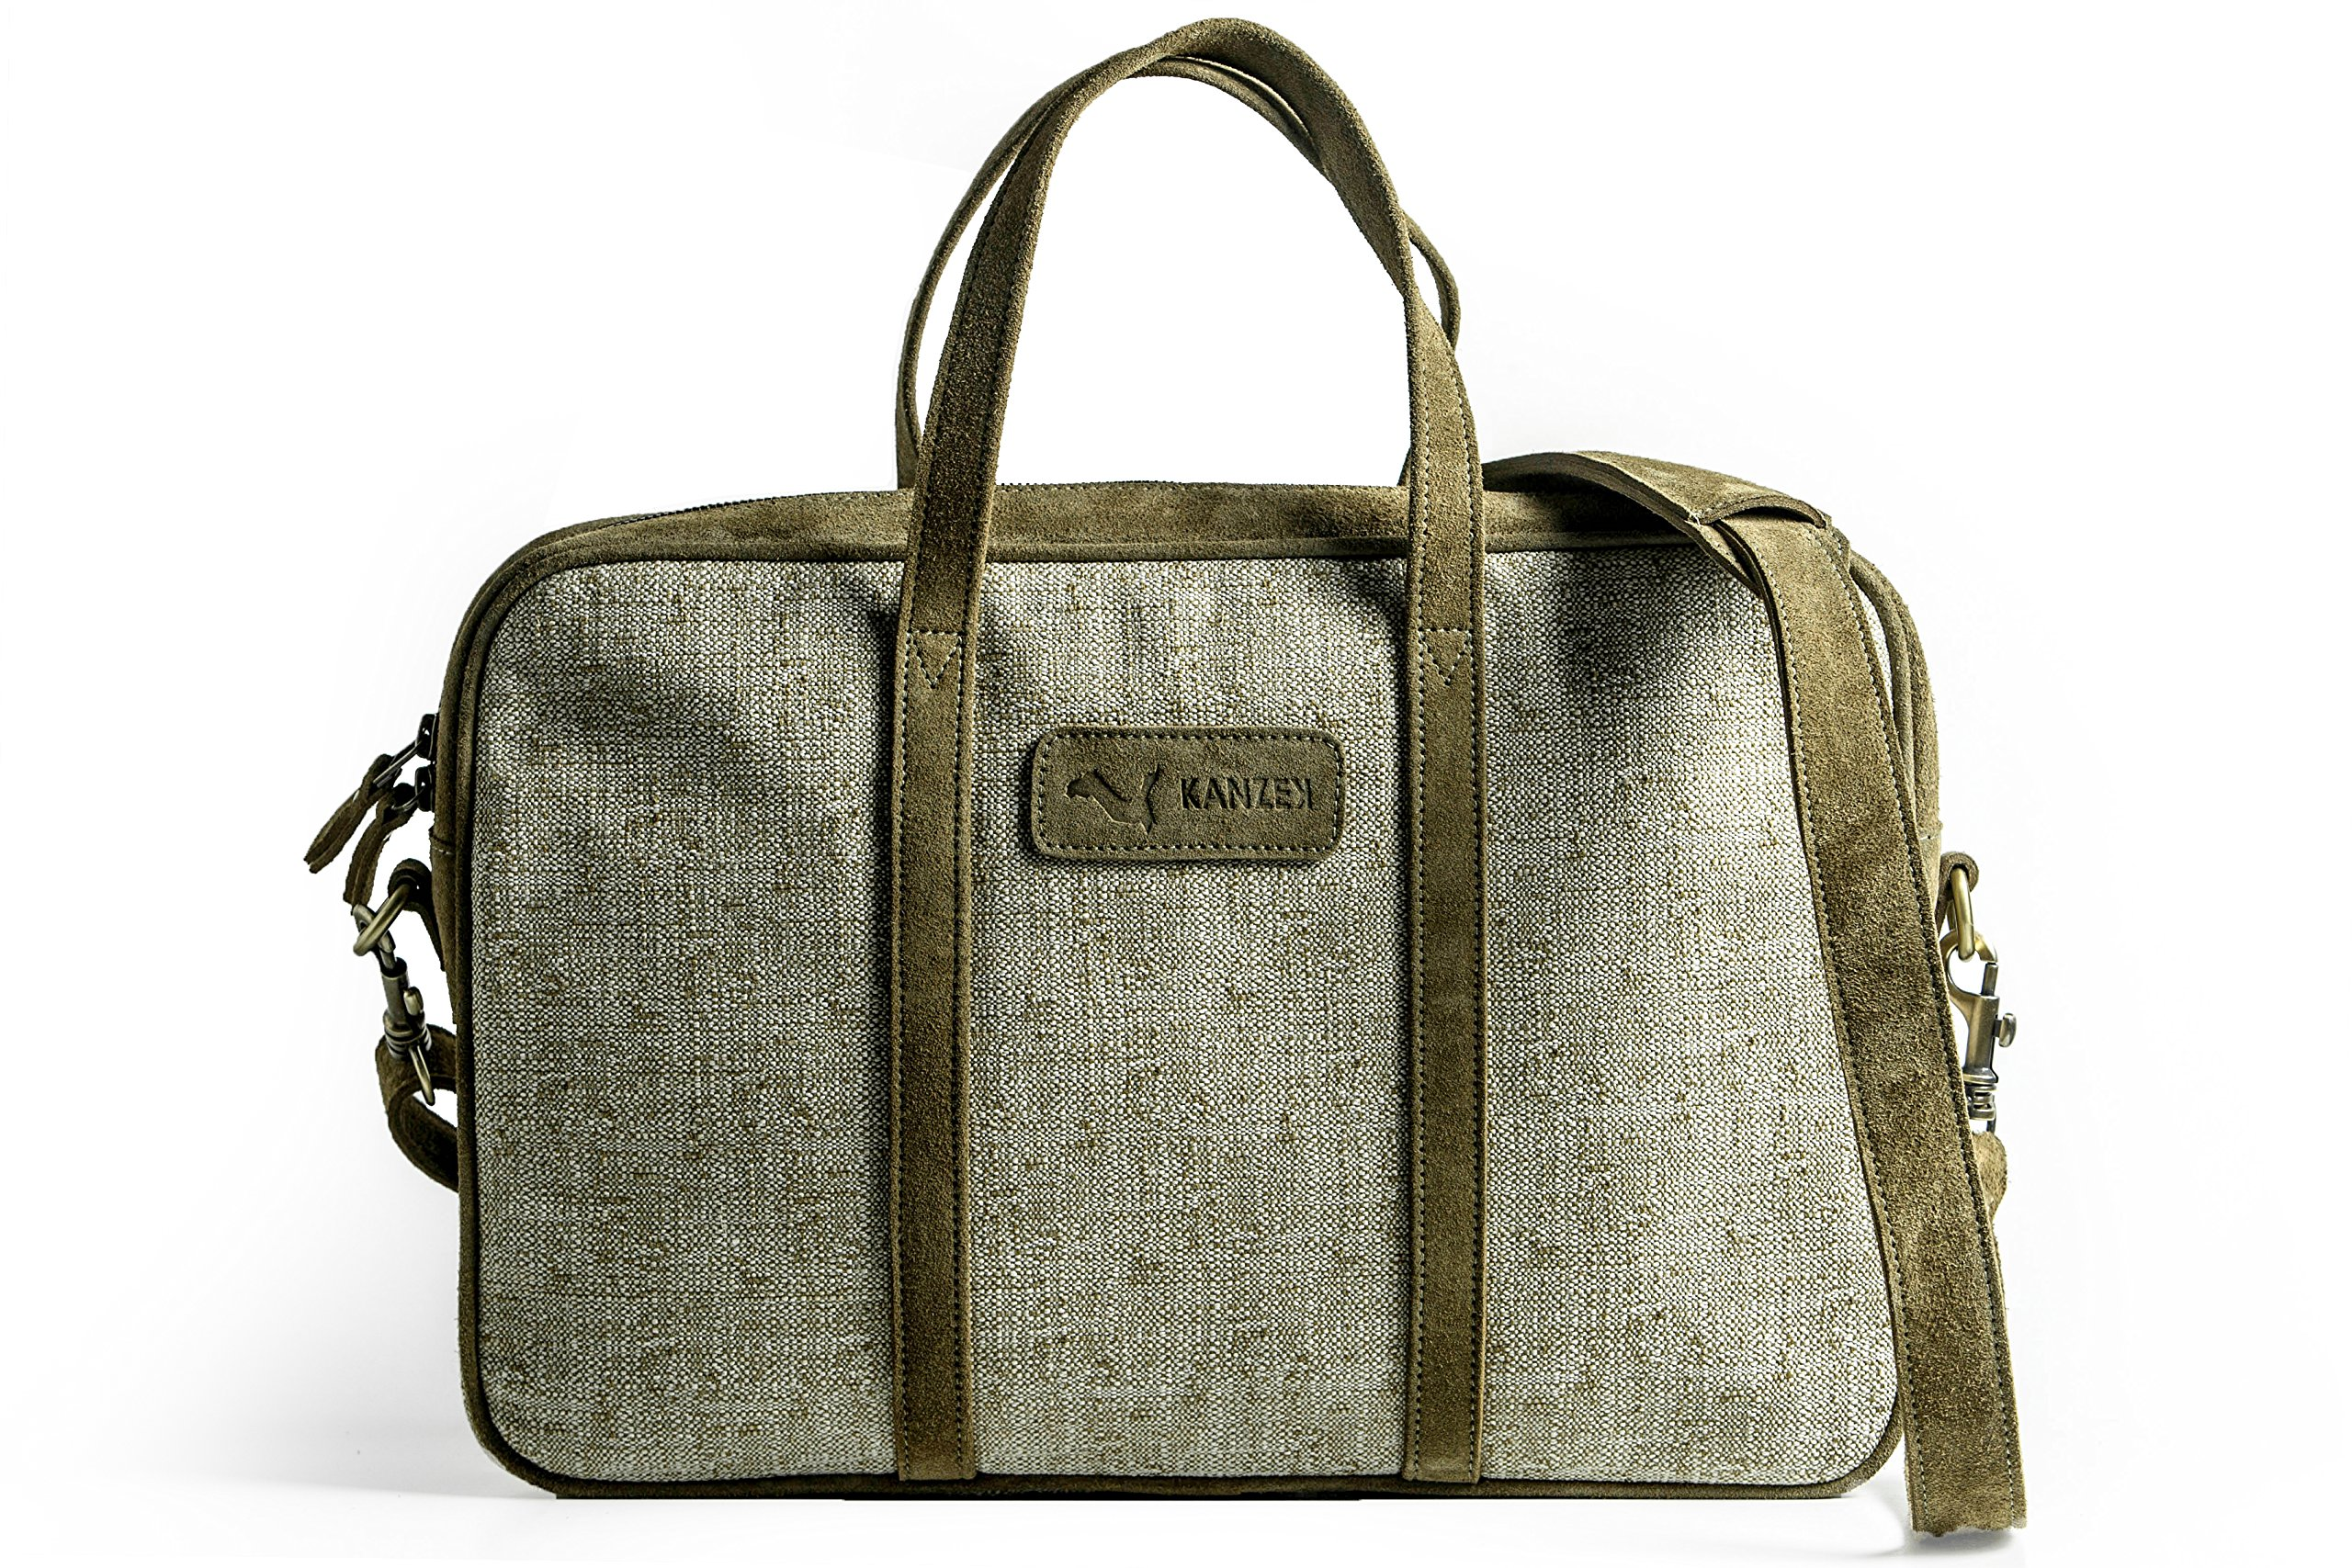 KANZEK Khaki Leather and Canvas Laptop Messenger Briefcase/Shoulder Bag, 15.6'' Computers, Light and Professional. Premium Materials and Design, Luxury Metal Zippers - Men's and Women's